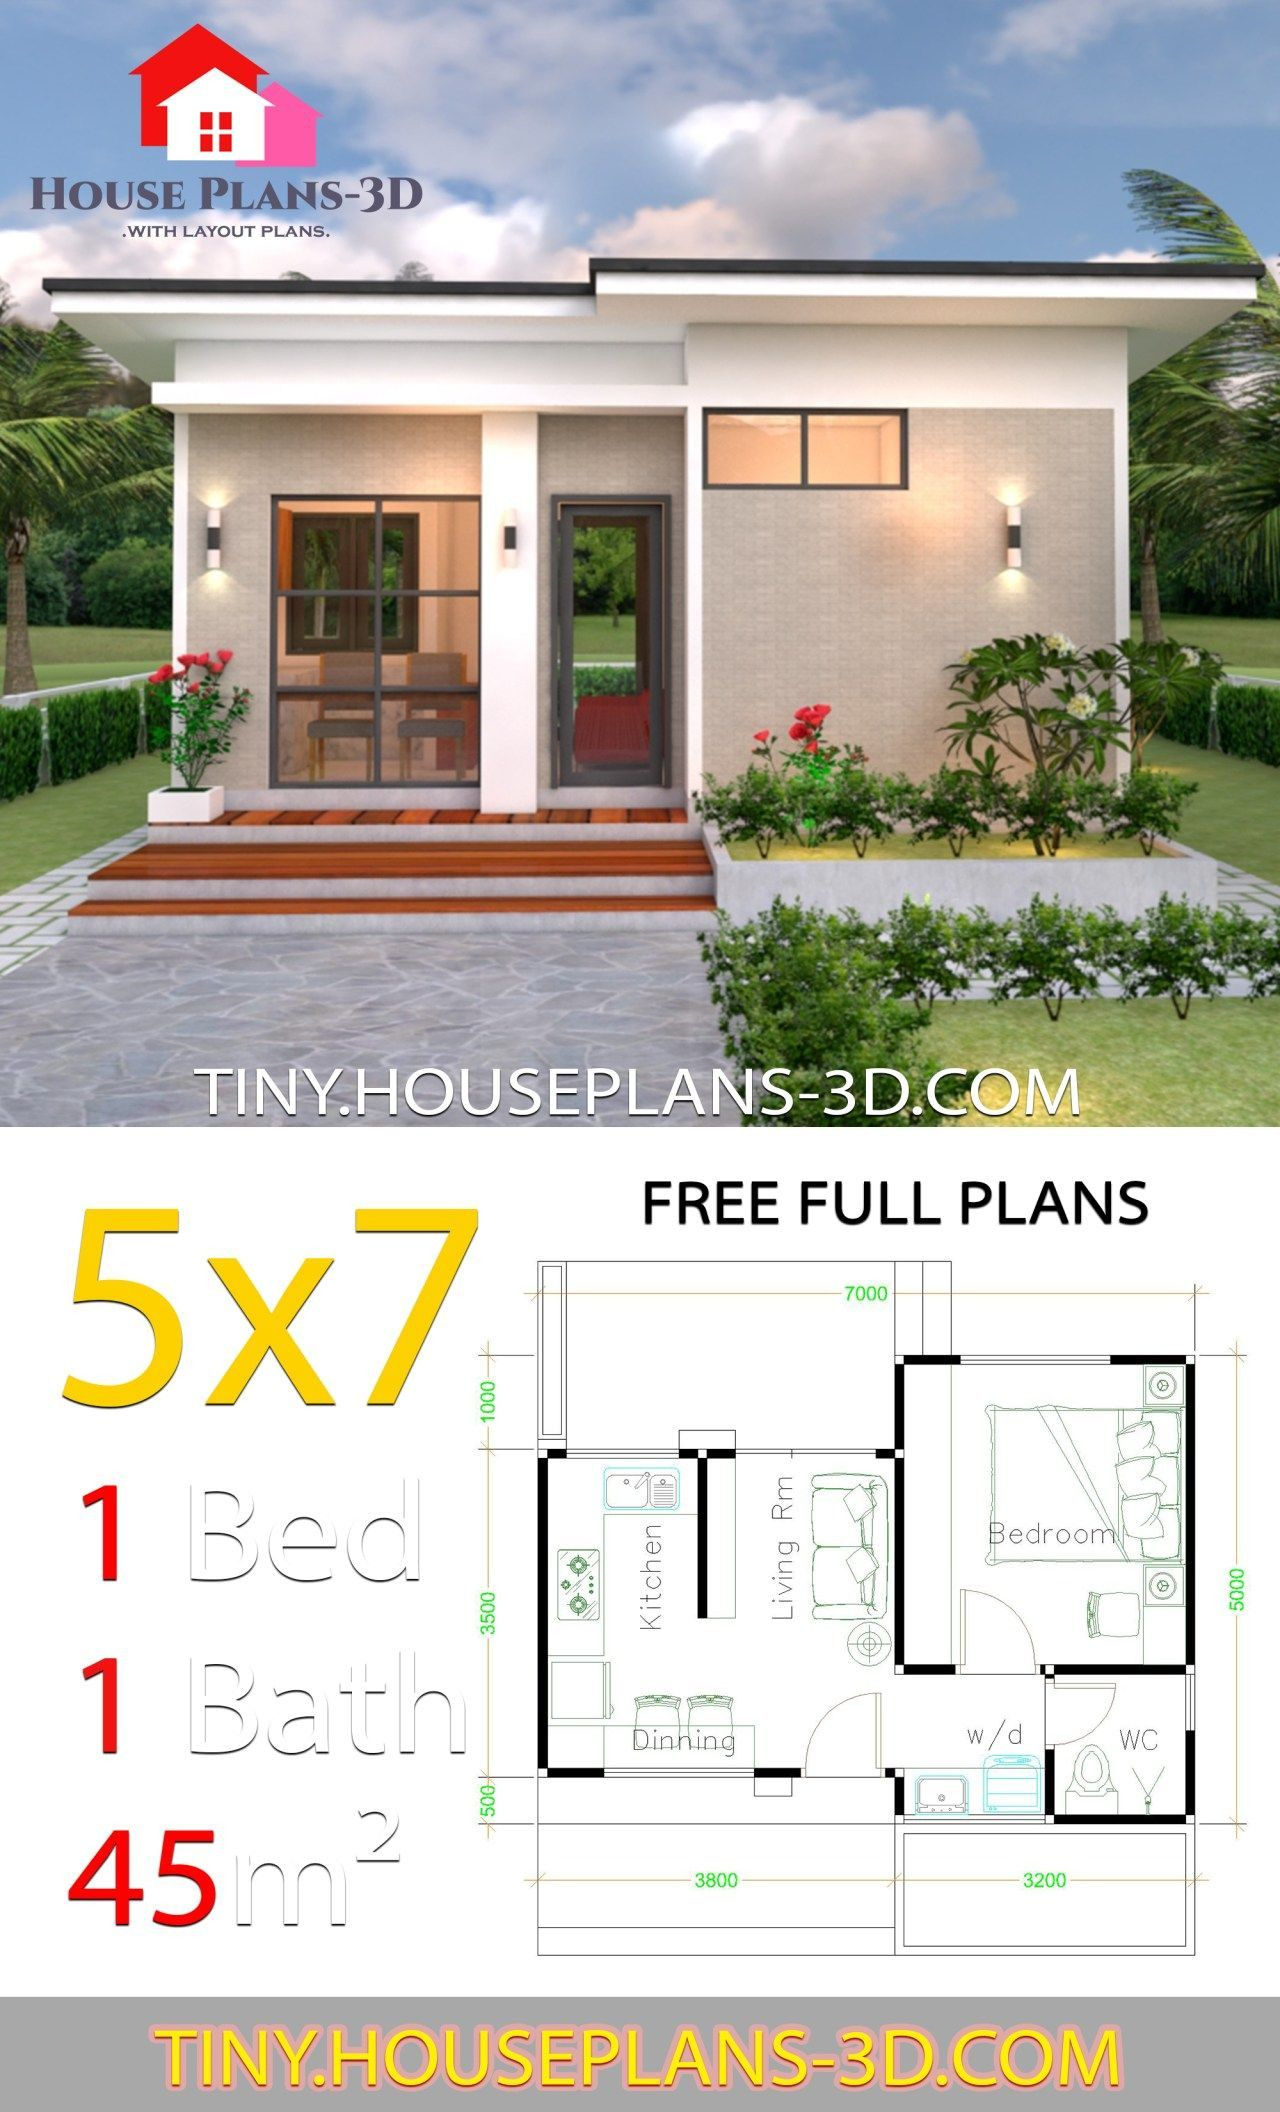 Lovely Tiny House Plans One Floor One Bedroom Small House Design Plans 5x7 With E Bedroom She Small House Design Plans Home Design Plans Micro House Plans